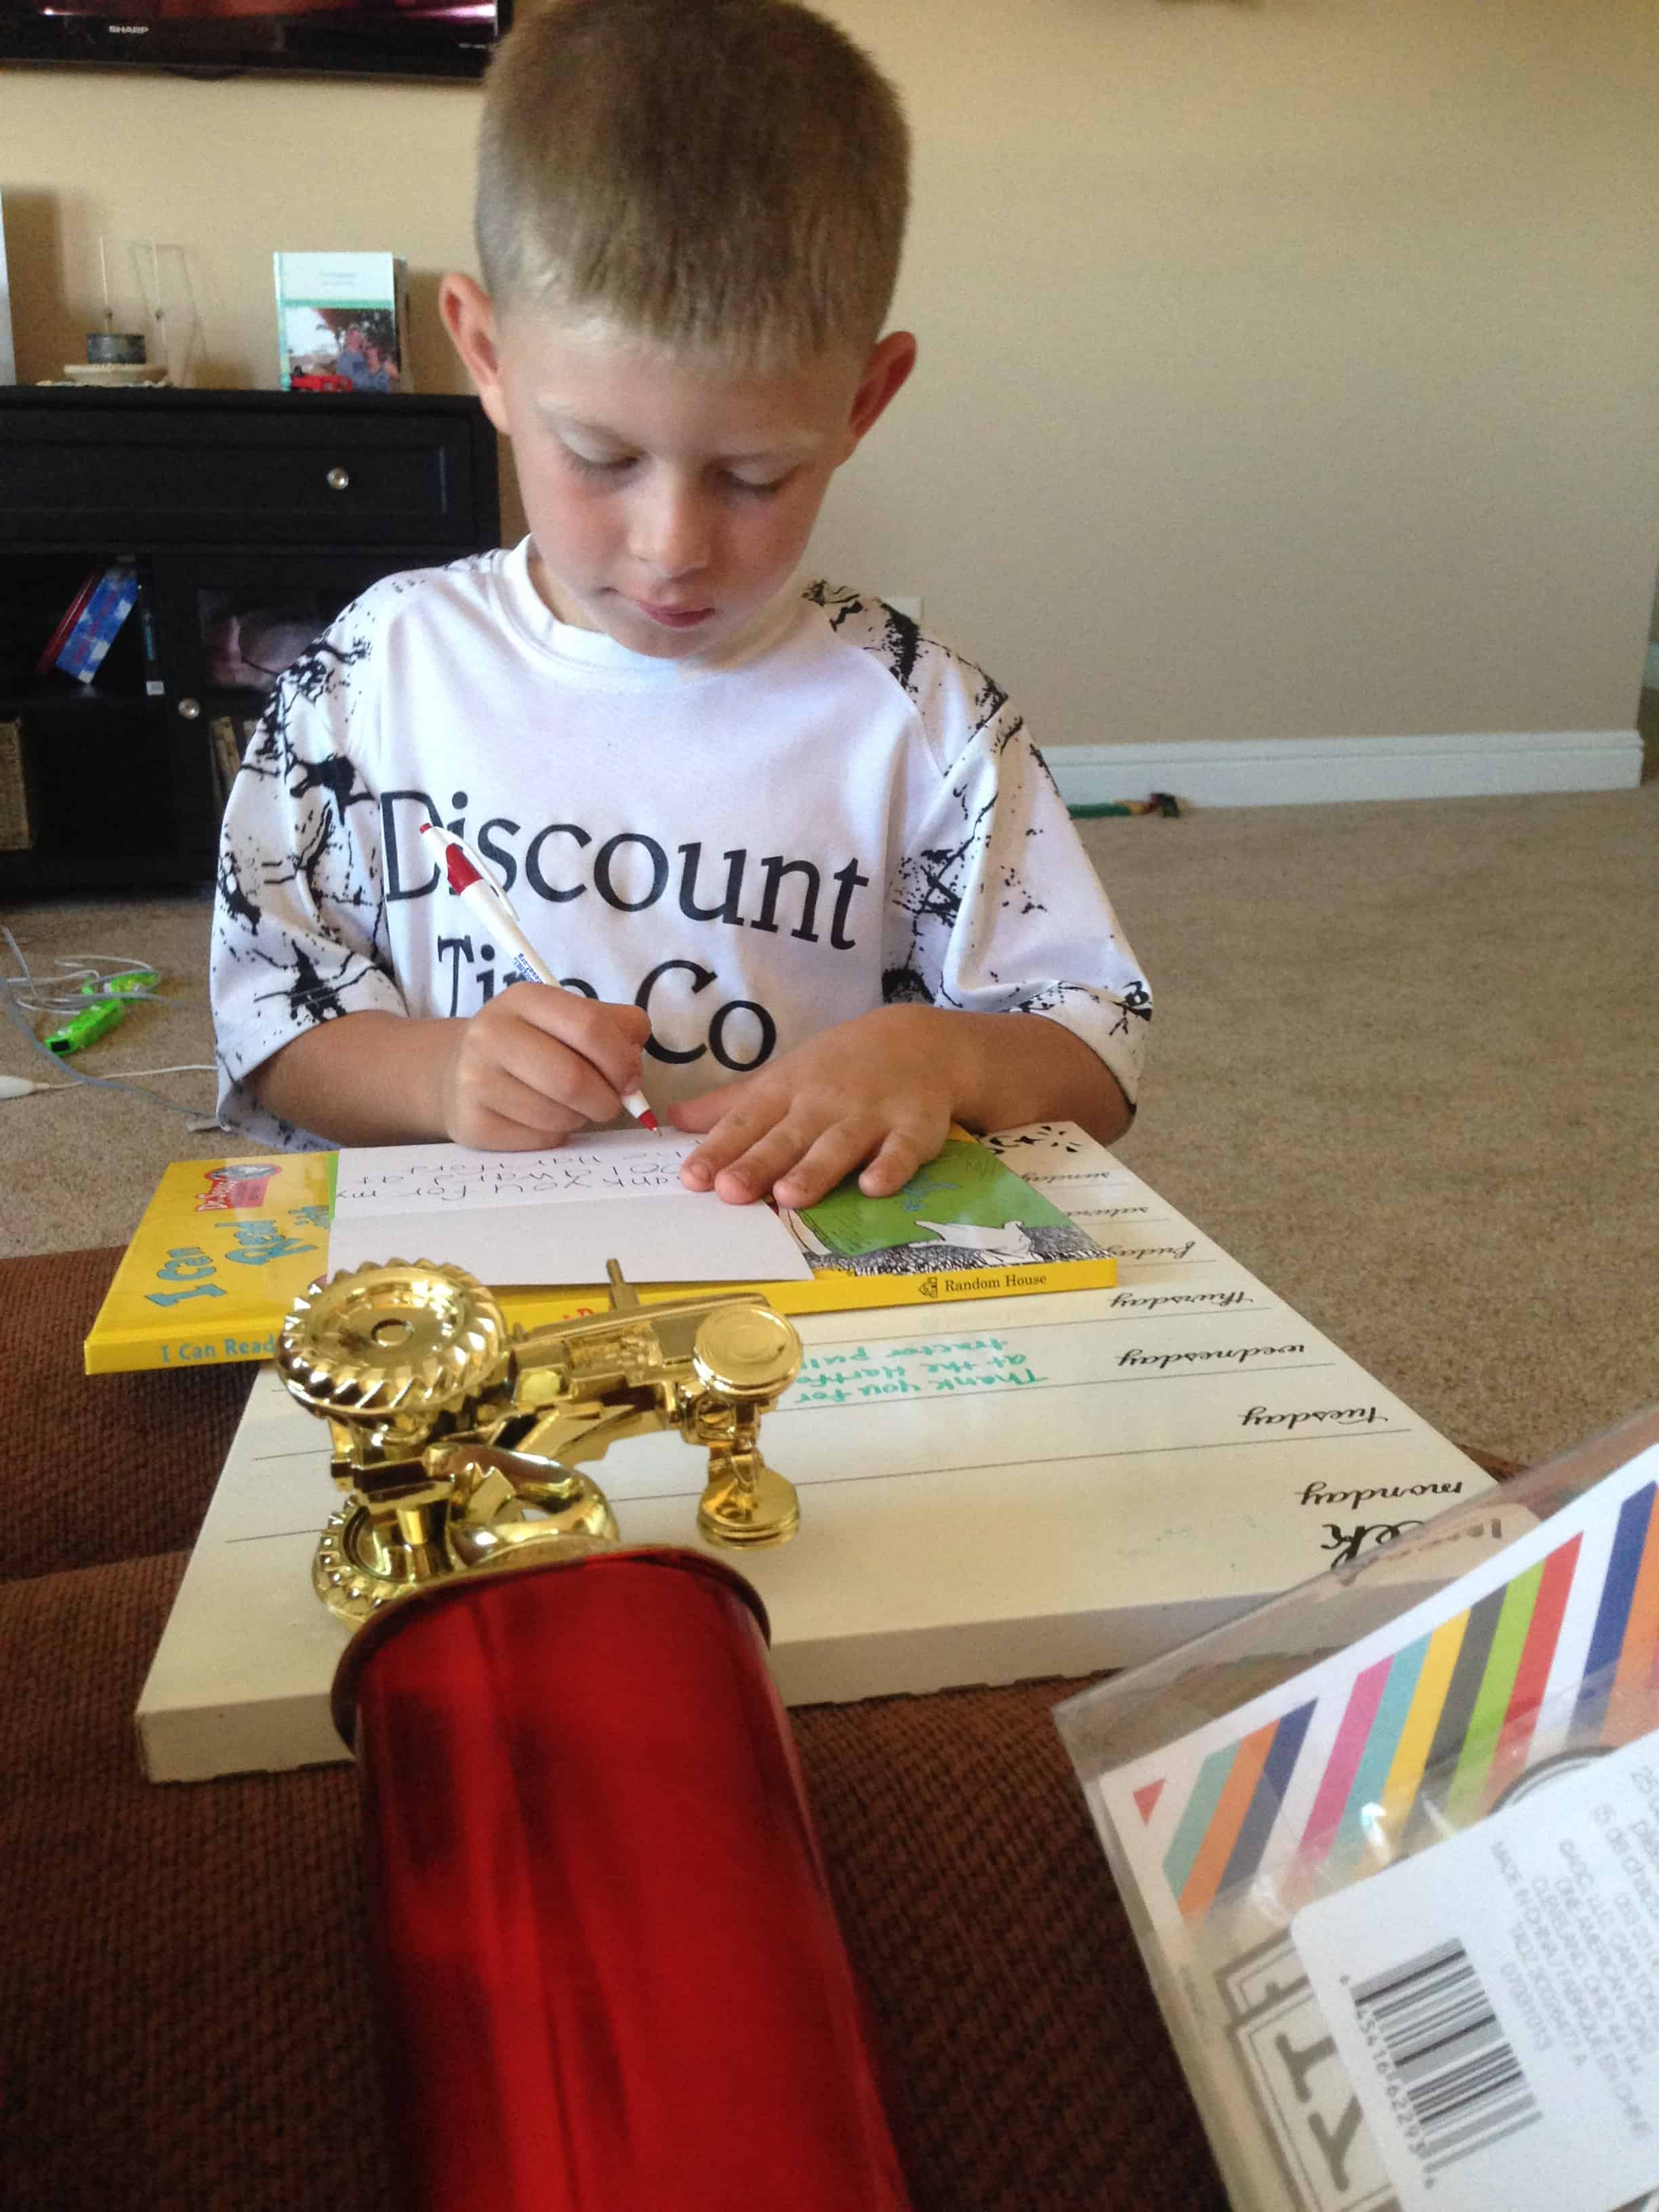 Let's teach our kids how to write thank you notes!